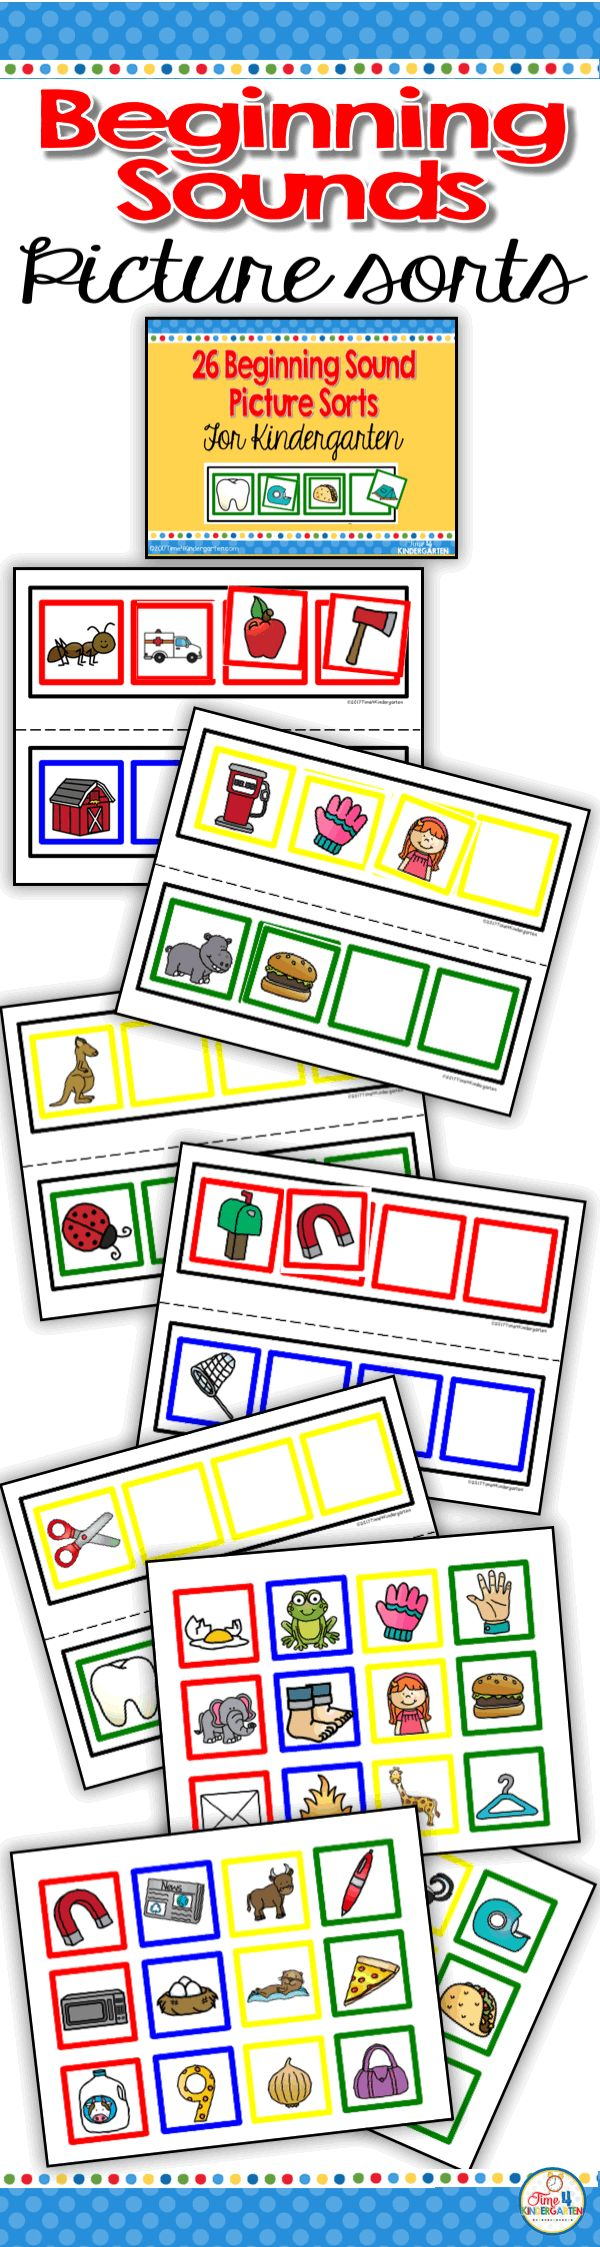 First Sound Picture Sort- initial sound recognition for kindergarten. Add this to your literacy center to help students understand the concept of first sounds.